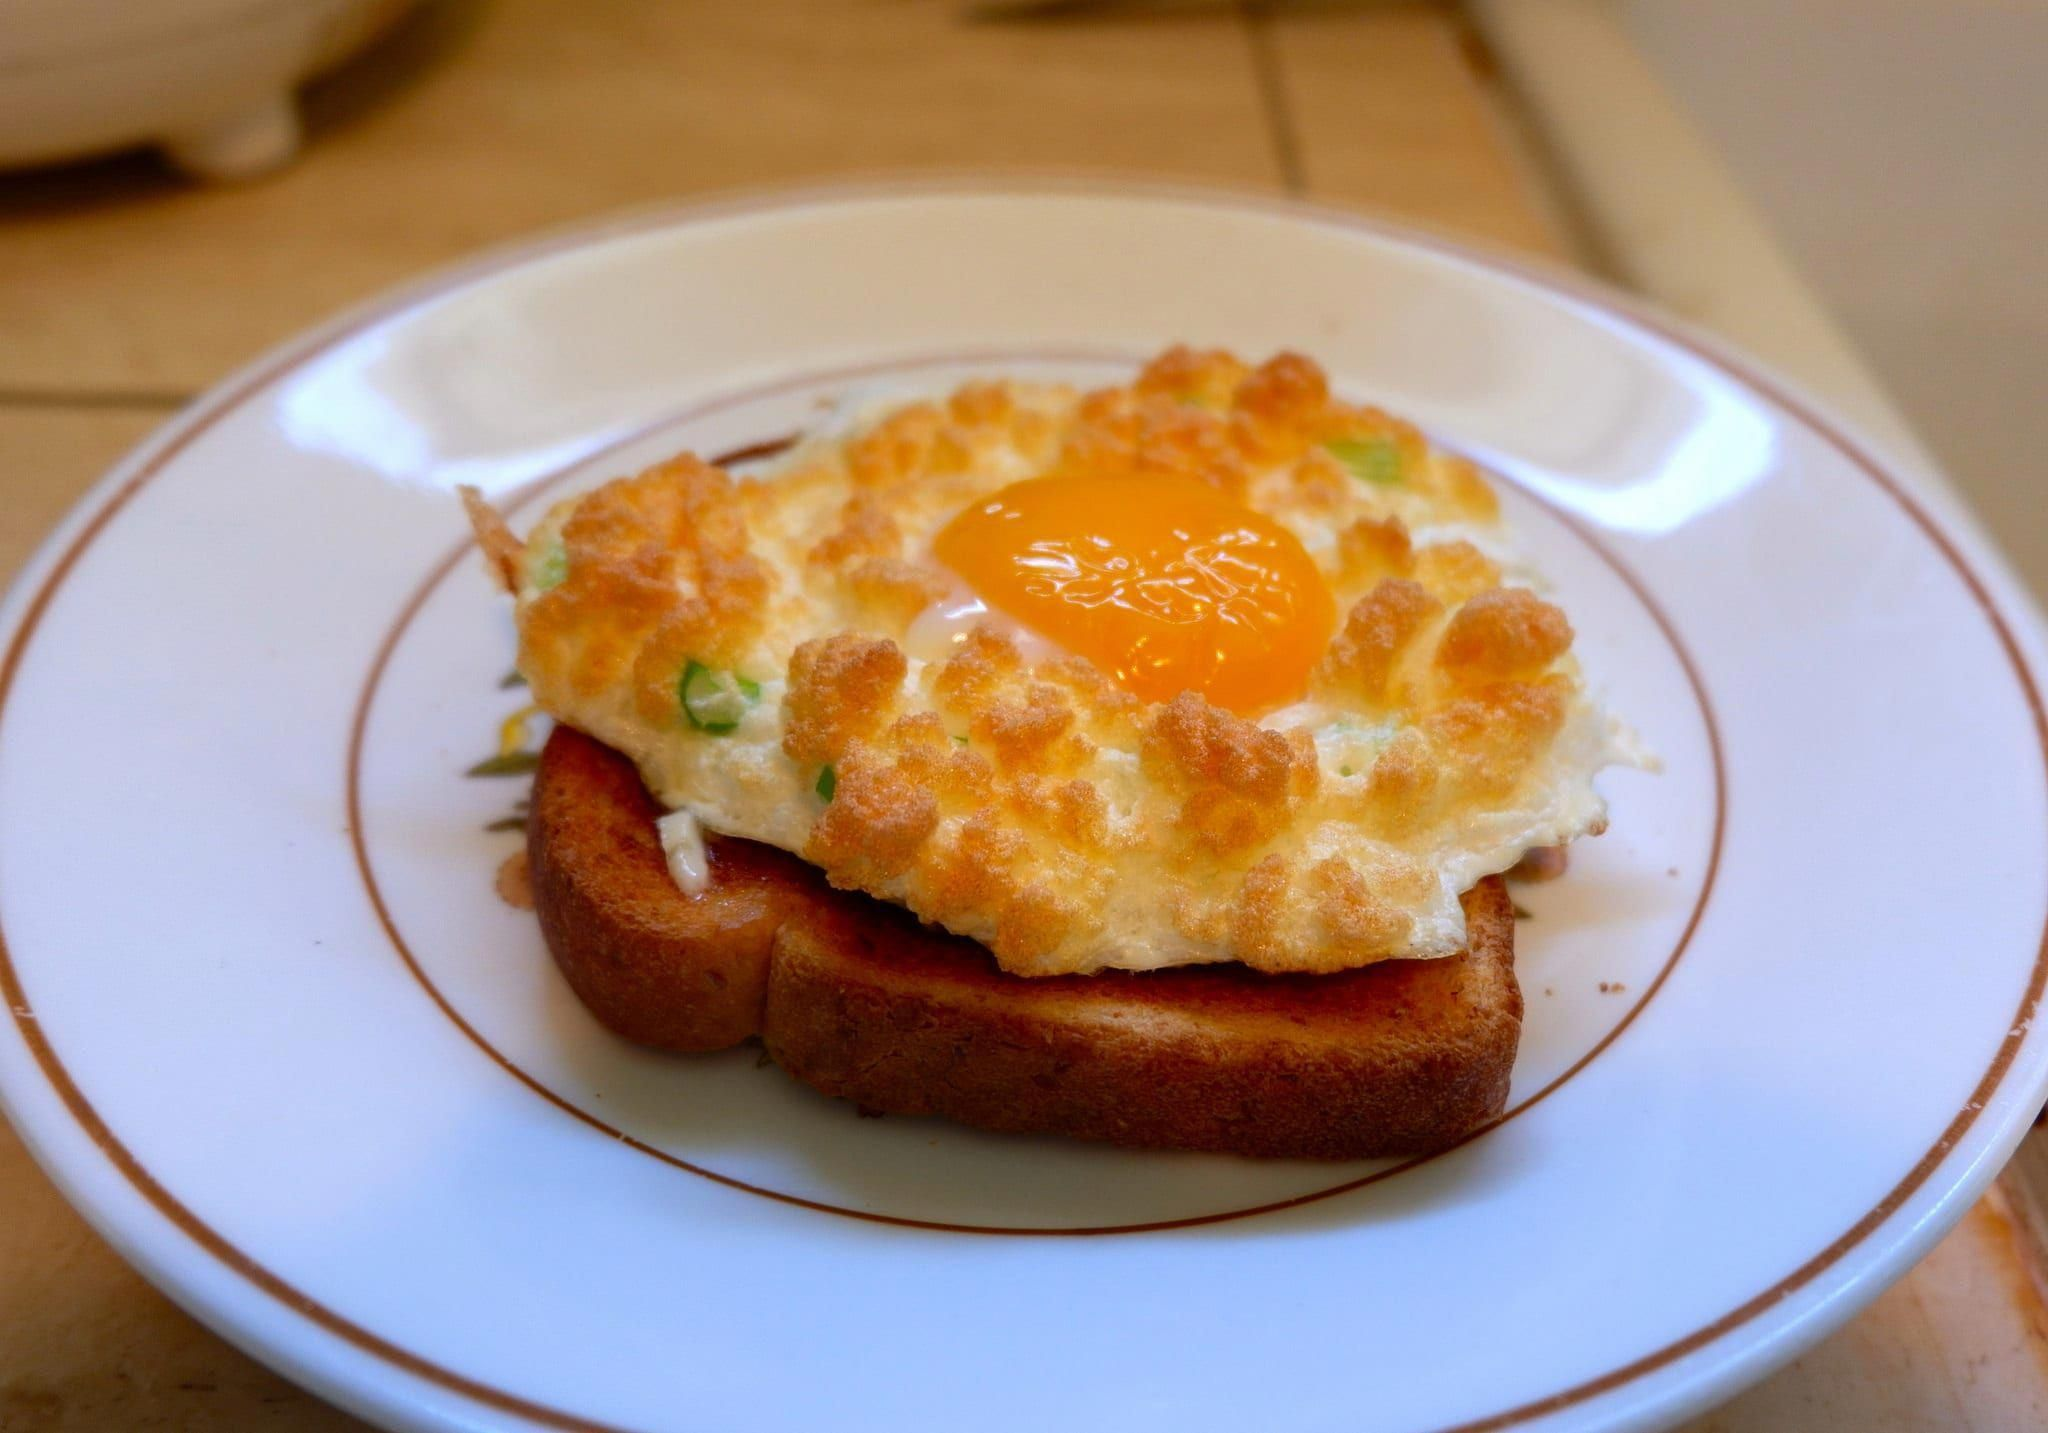 These Tasty Cloud Eggs Are Instagram's Newest Food Trend #cookingrecipes #cloudeggs These Tasty Cloud Eggs Are Instagram's Newest Food Trend #cookingrecipes #cloudeggs These Tasty Cloud Eggs Are Instagram's Newest Food Trend #cookingrecipes #cloudeggs These Tasty Cloud Eggs Are Instagram's Newest Food Trend #cookingrecipes #cloudeggs